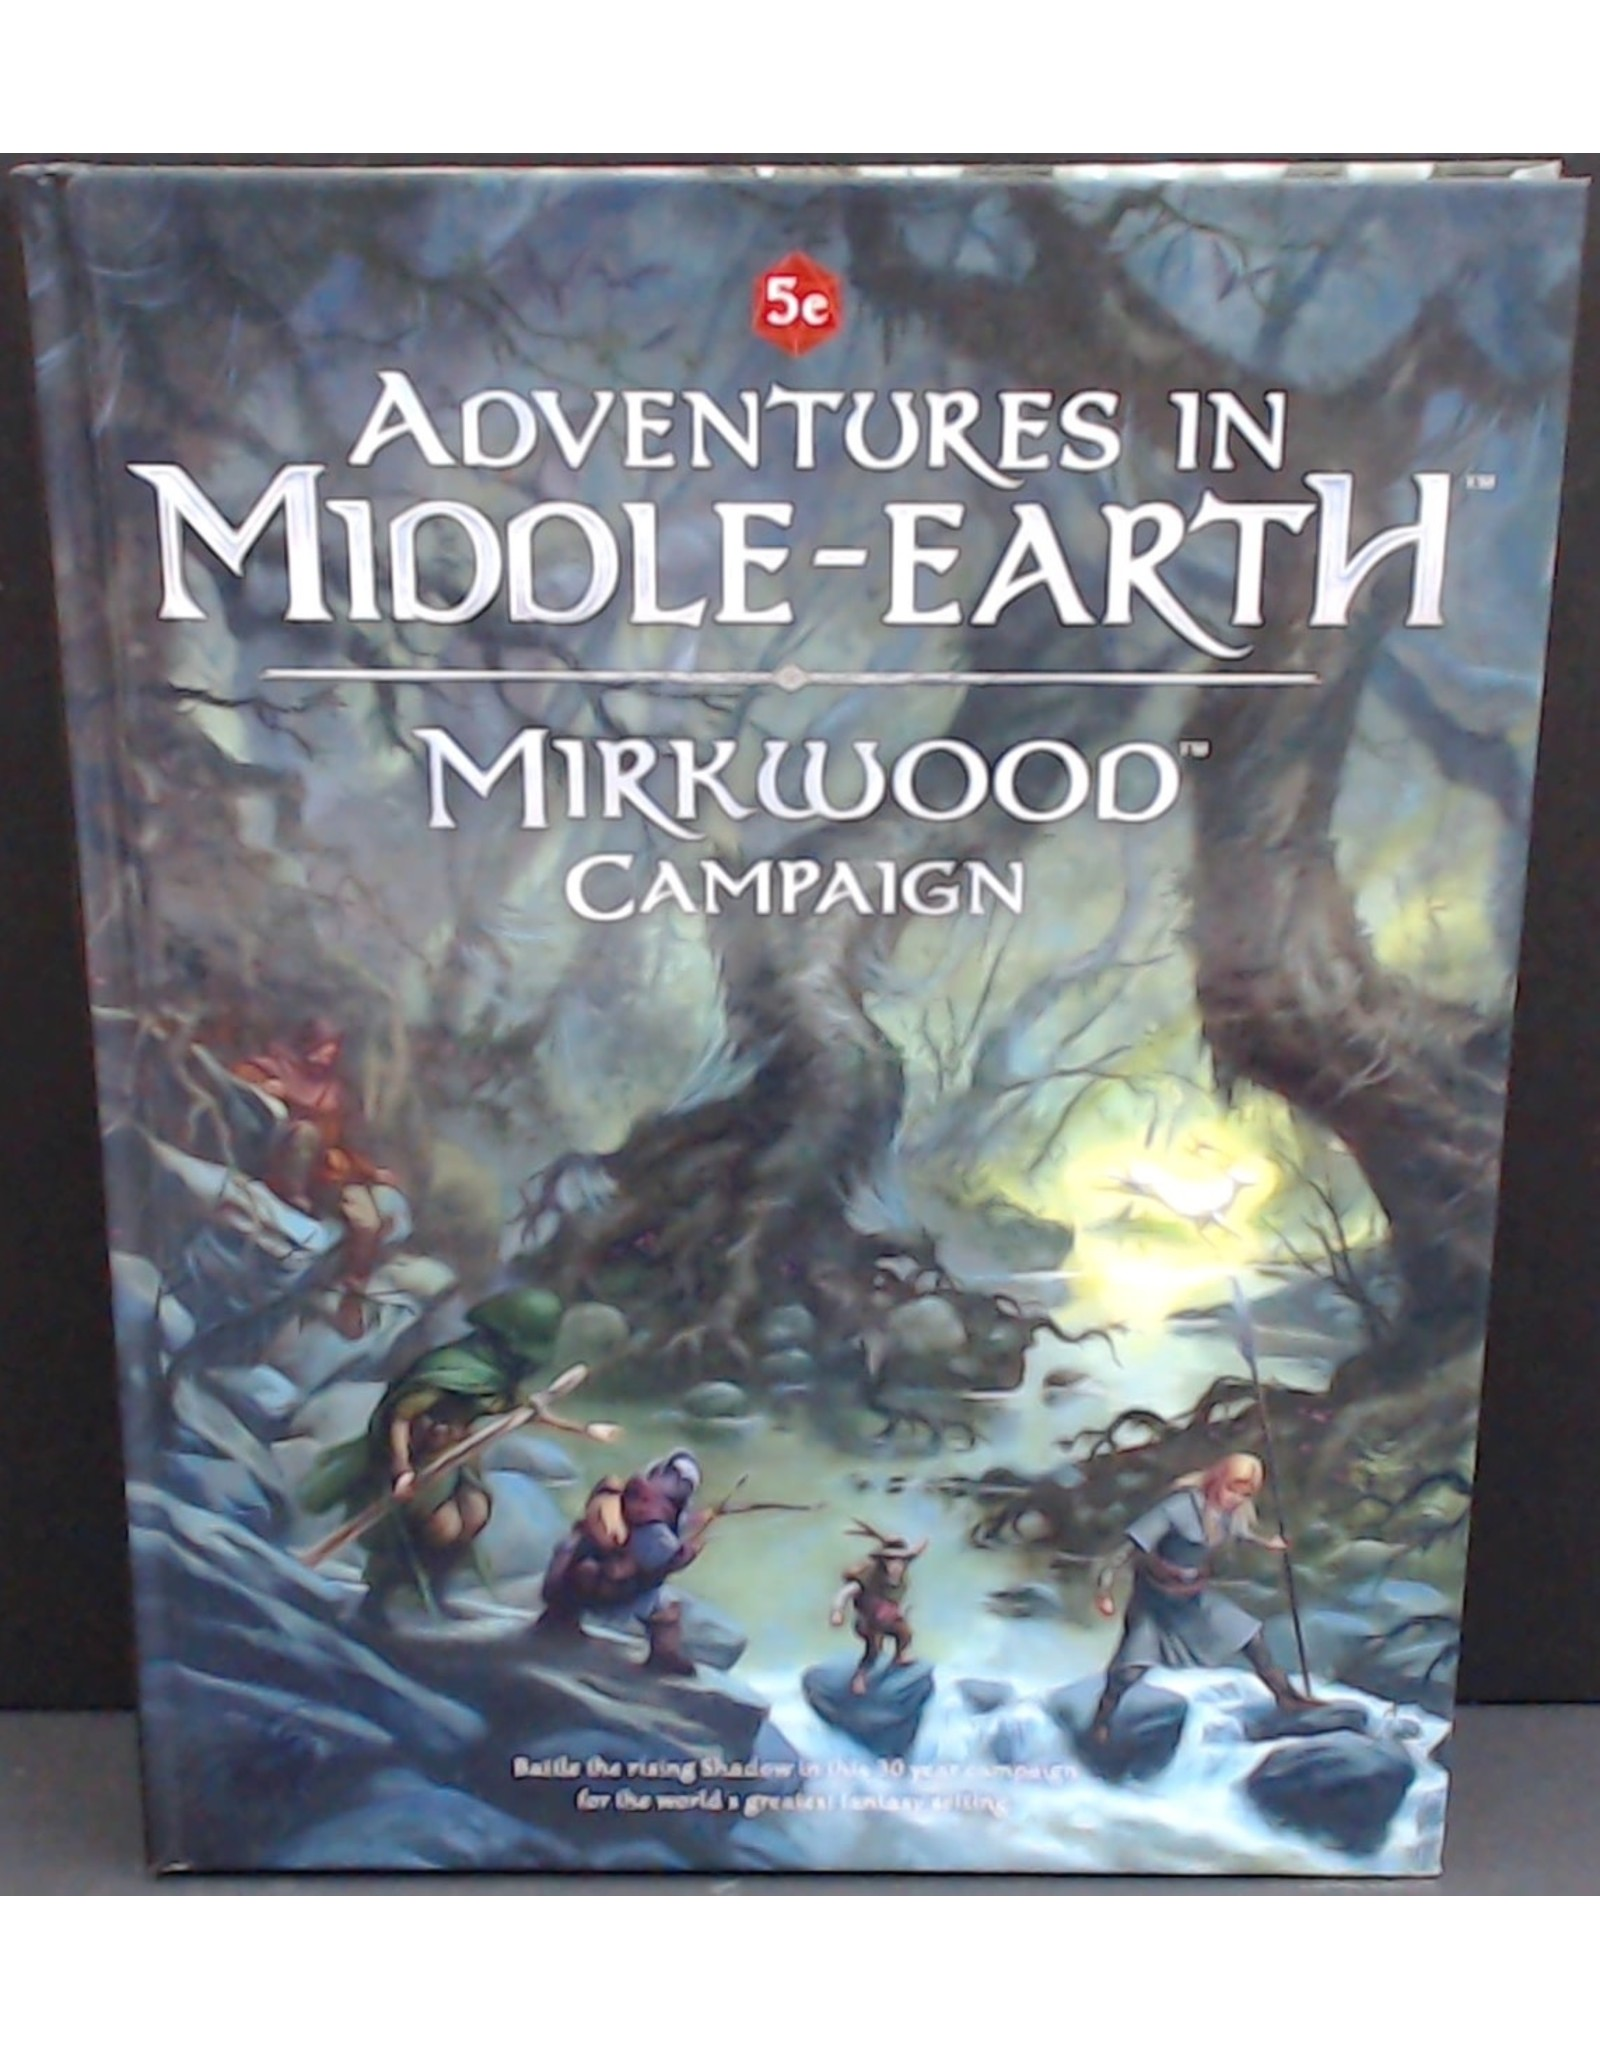 Adventures in Middle-Earth Mirkwood Campaign